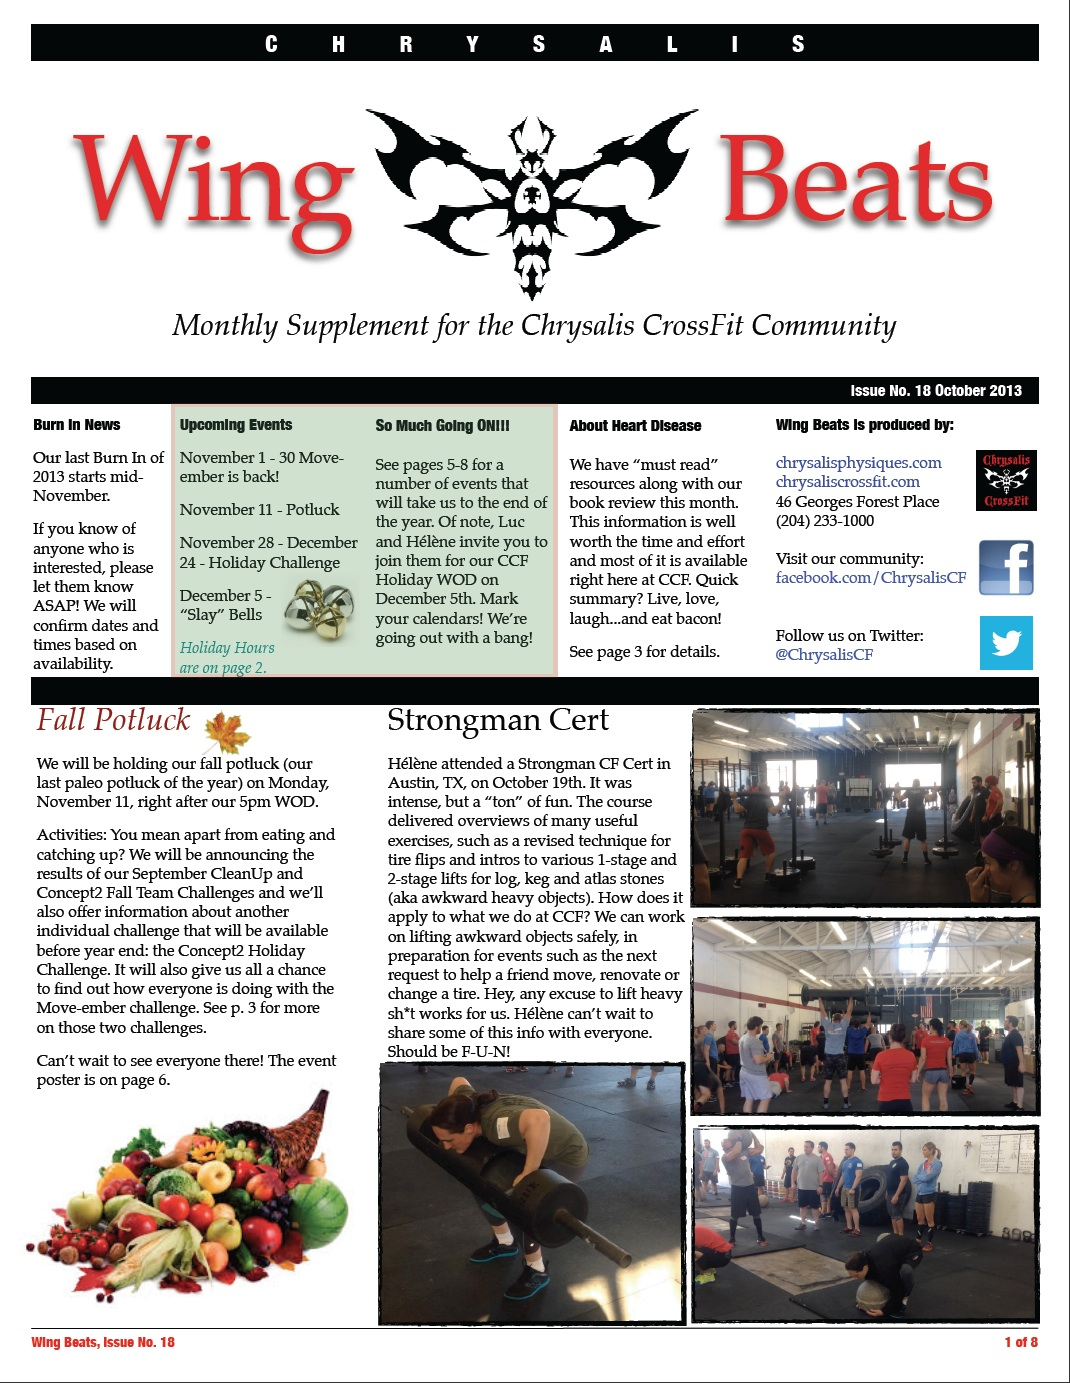 WingBeats Issue #18 - October 2013